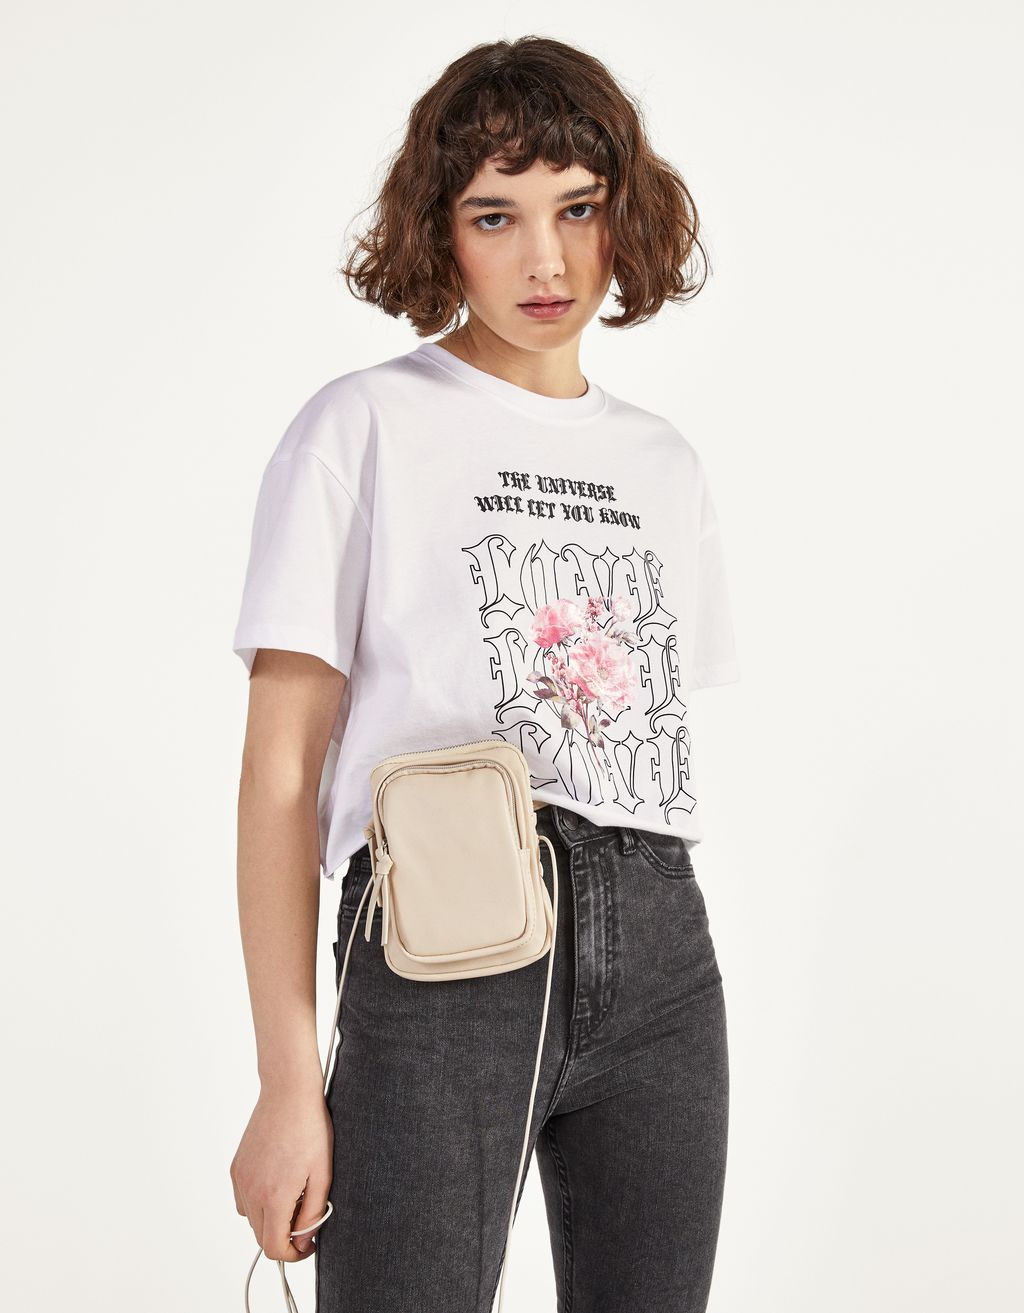 Cropped-Shirt mit Print